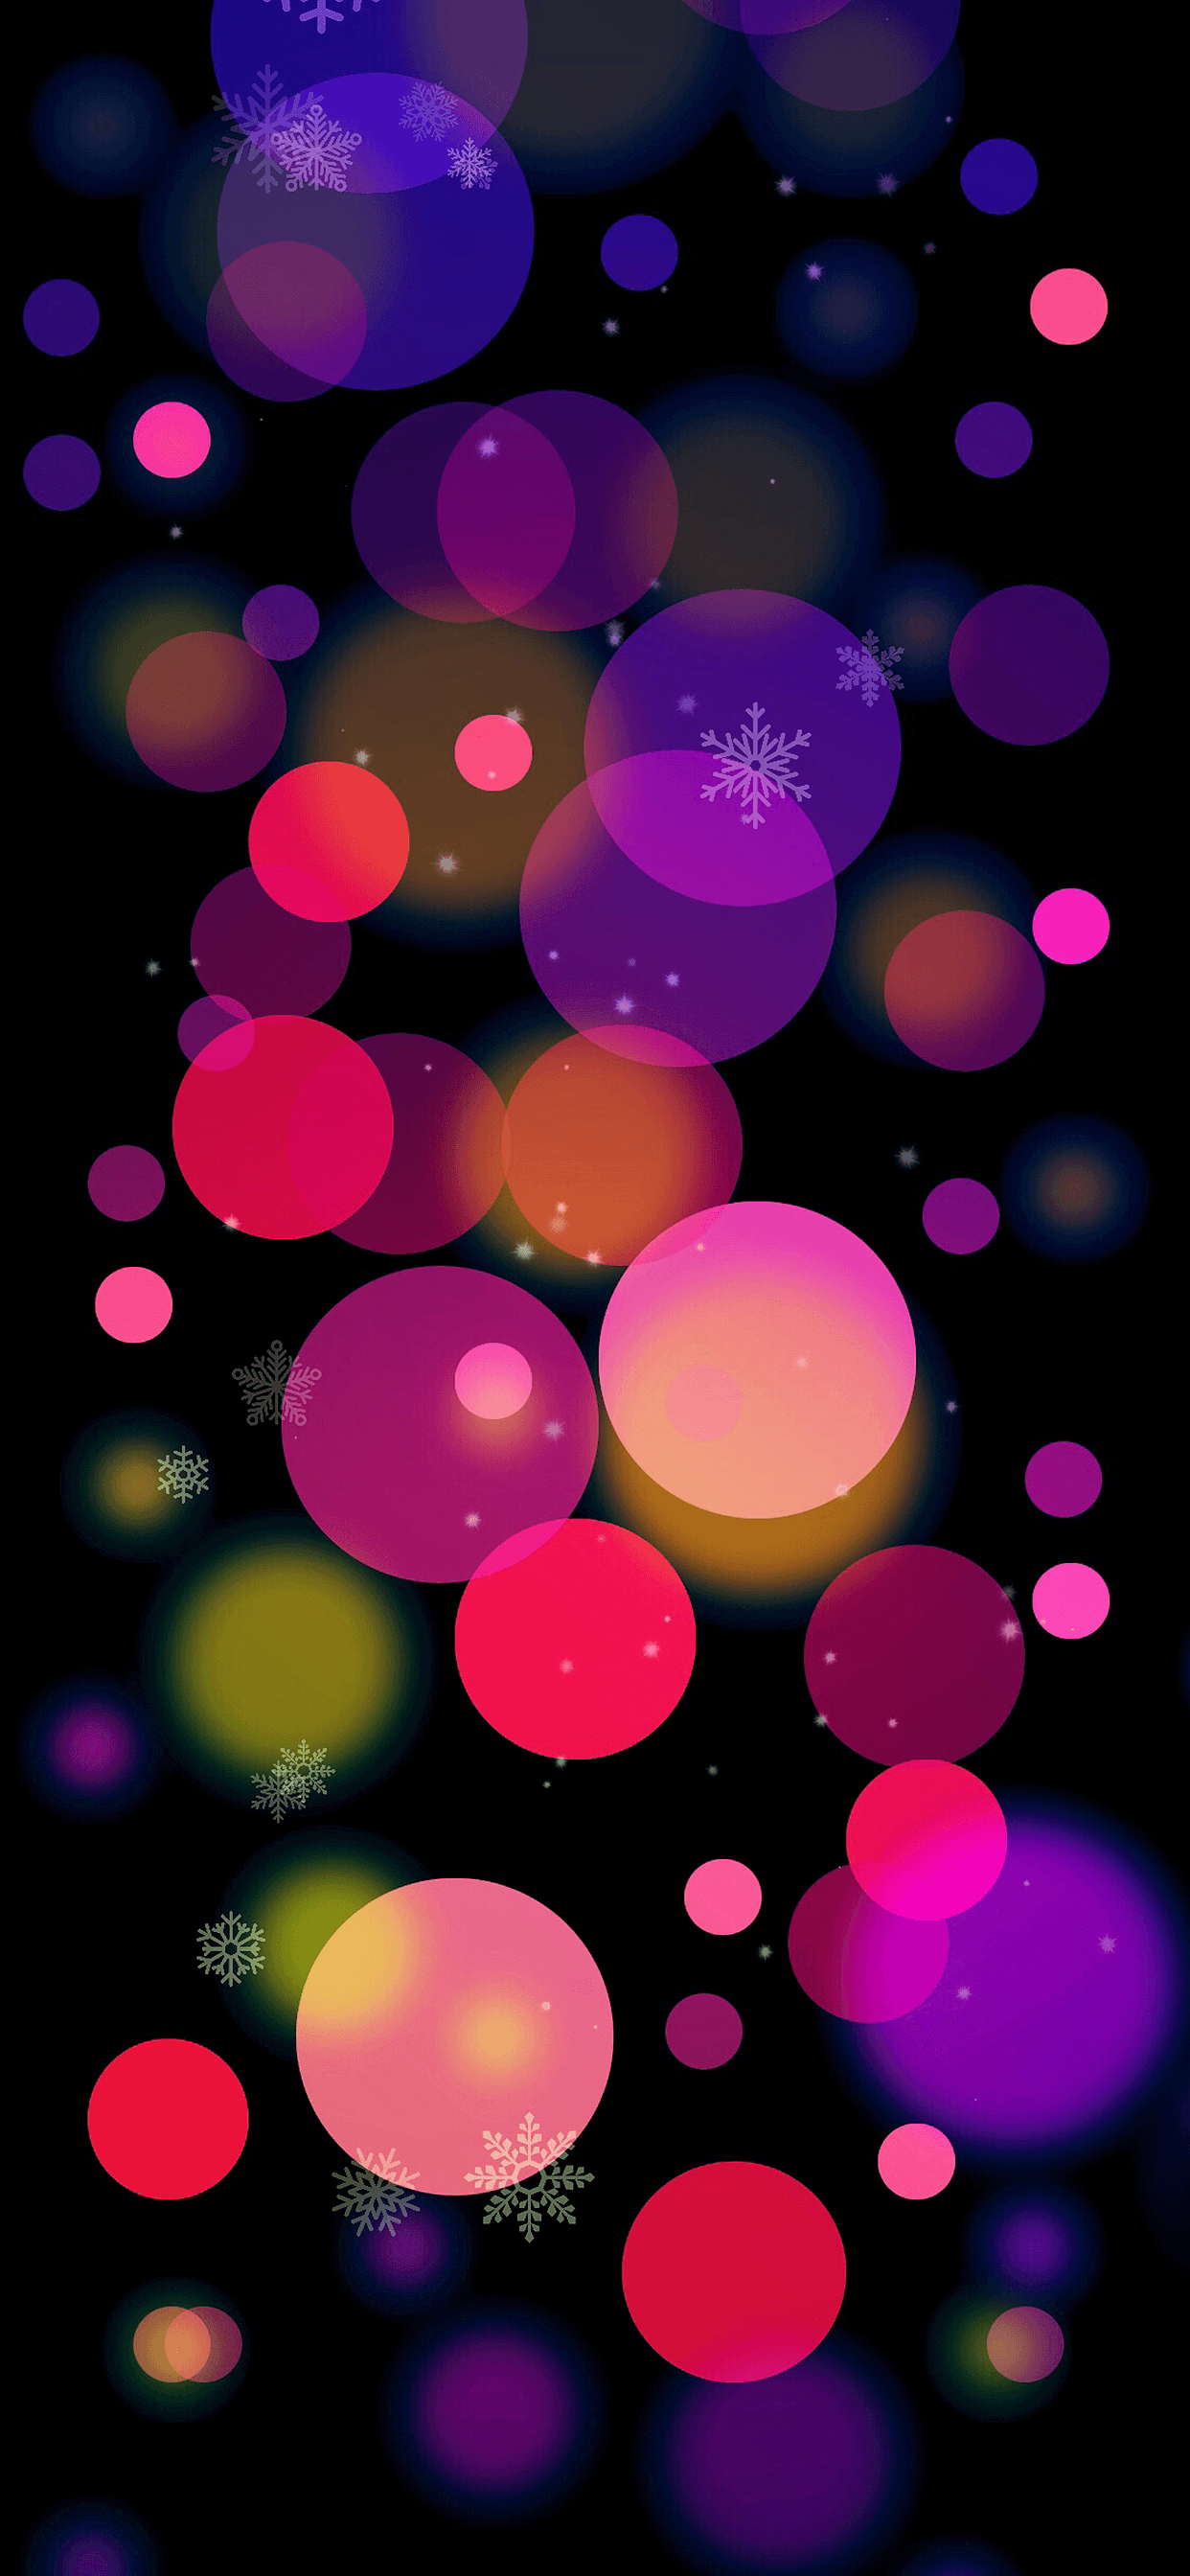 Christmas Colors Balls for iPhone XS MAX Wallpaper